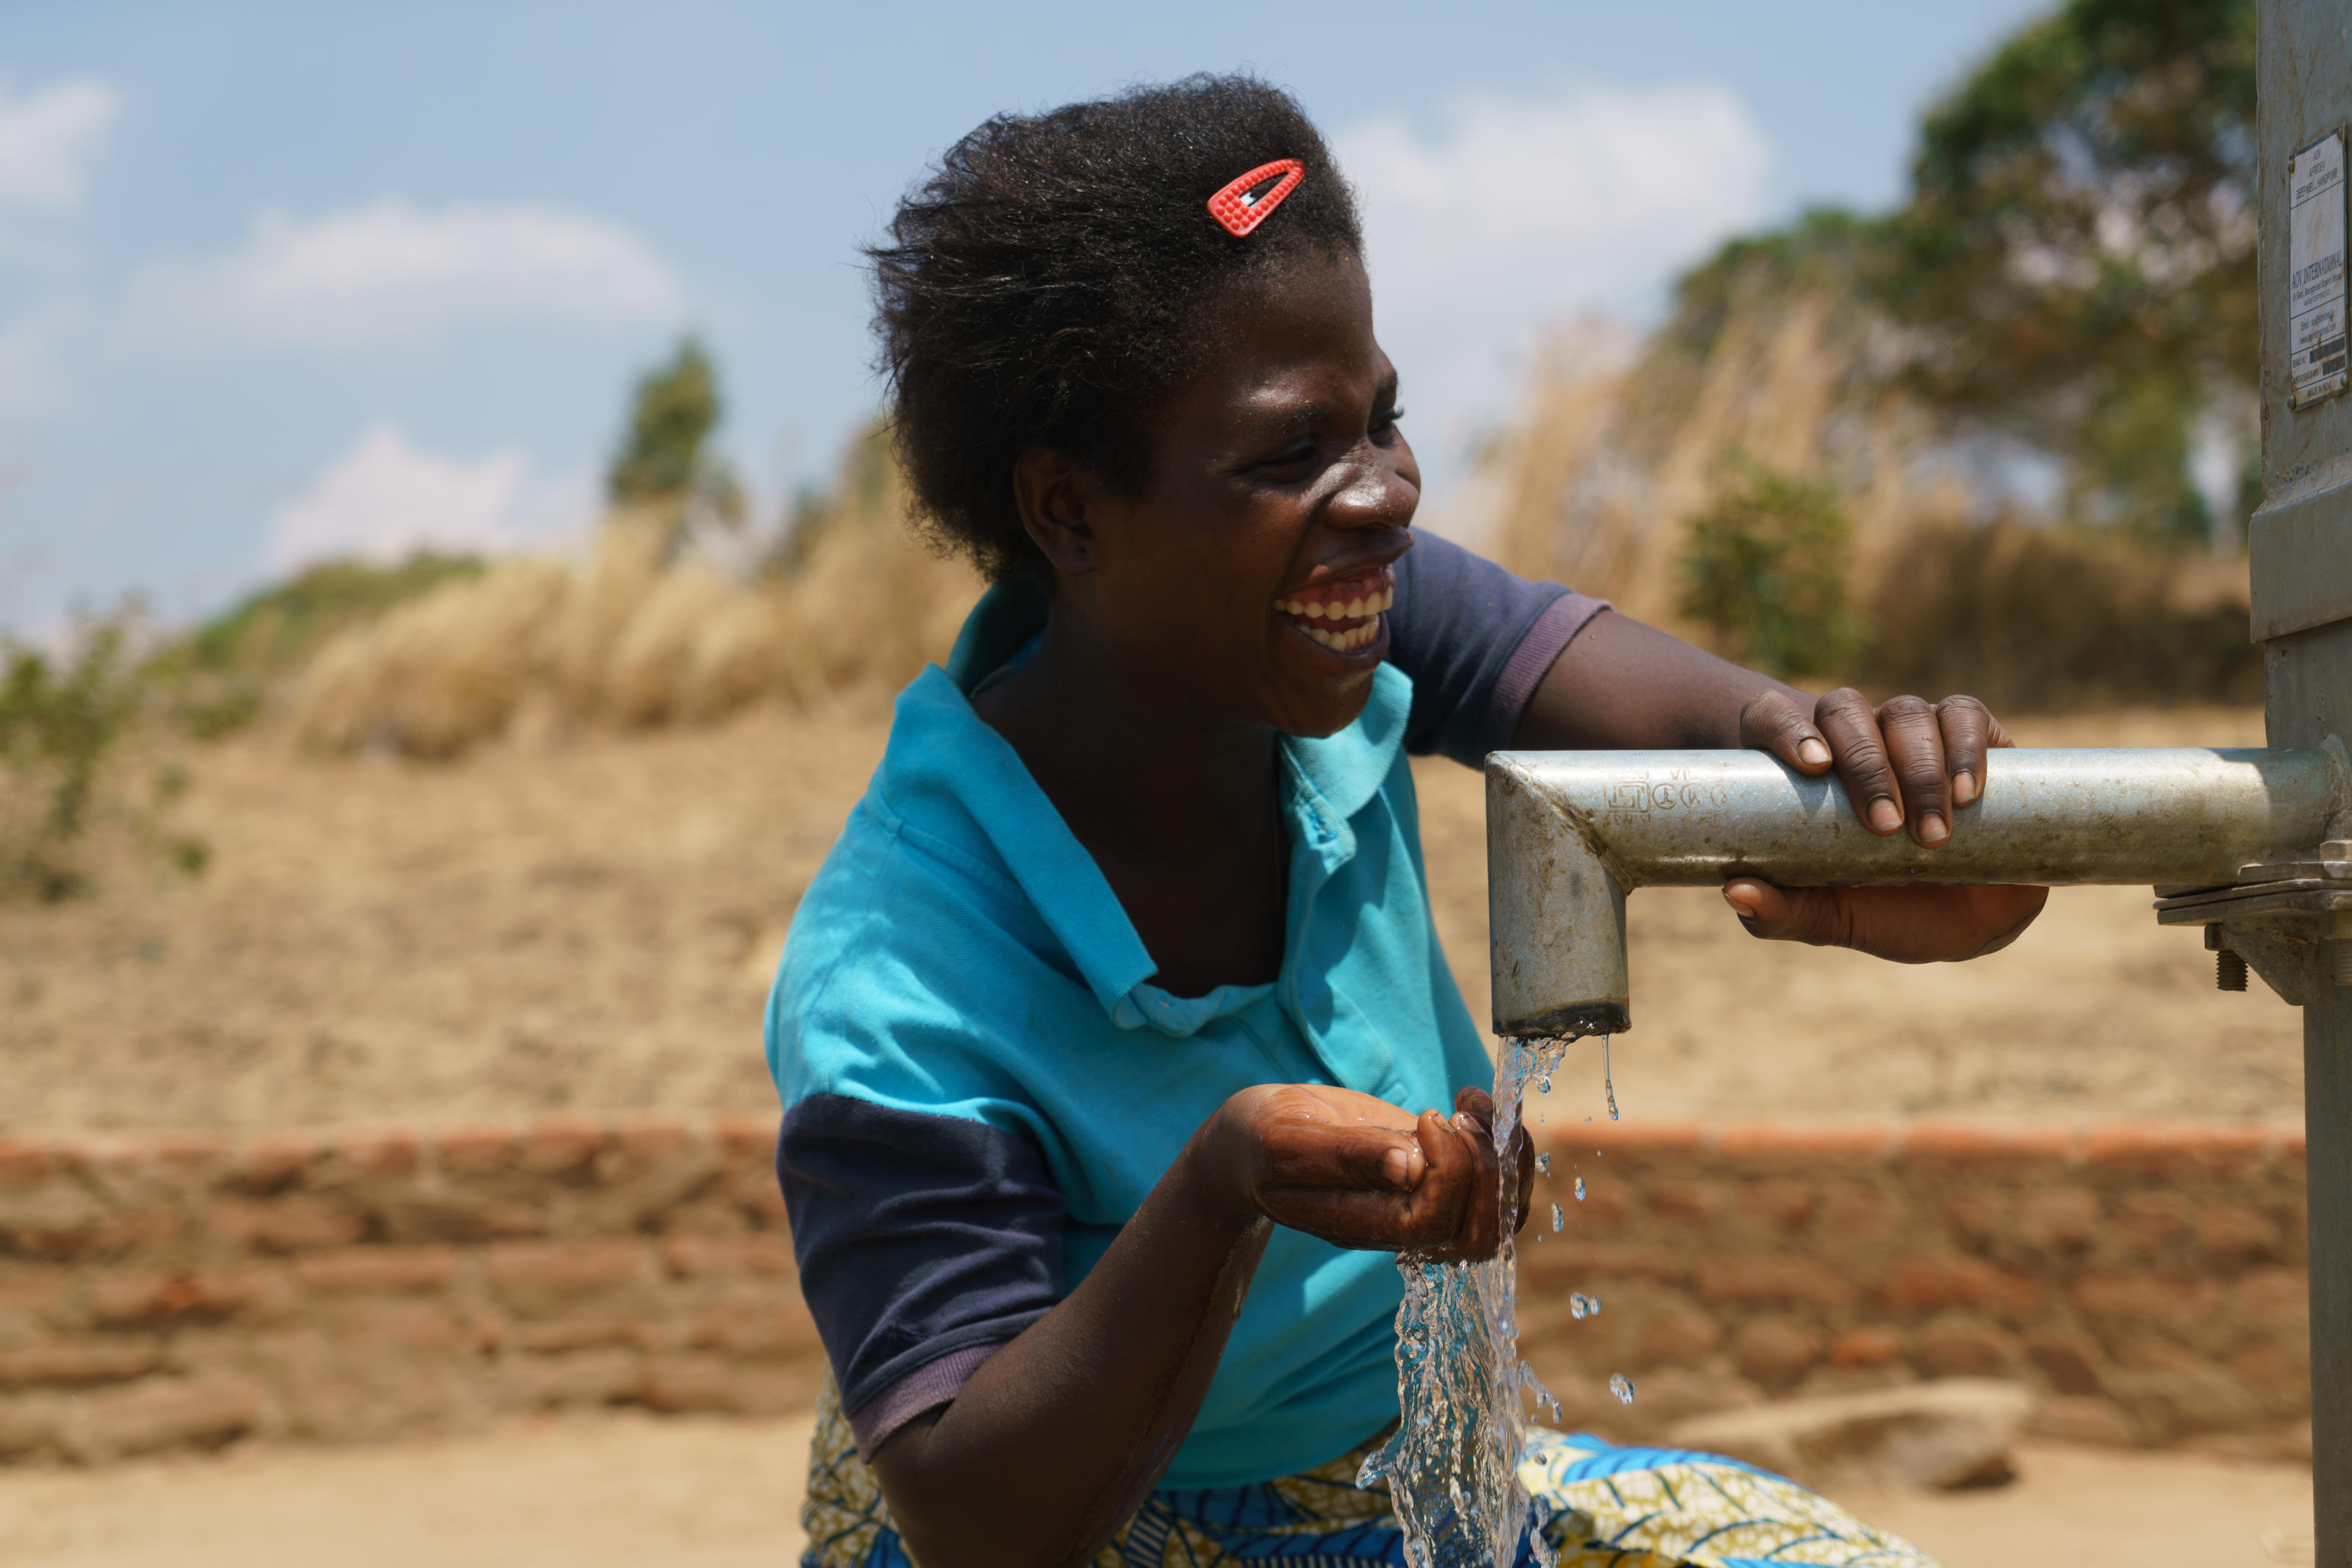 Esnart, 22, drinking water from the borehole in Vimphere Village, Malawi, September 2017